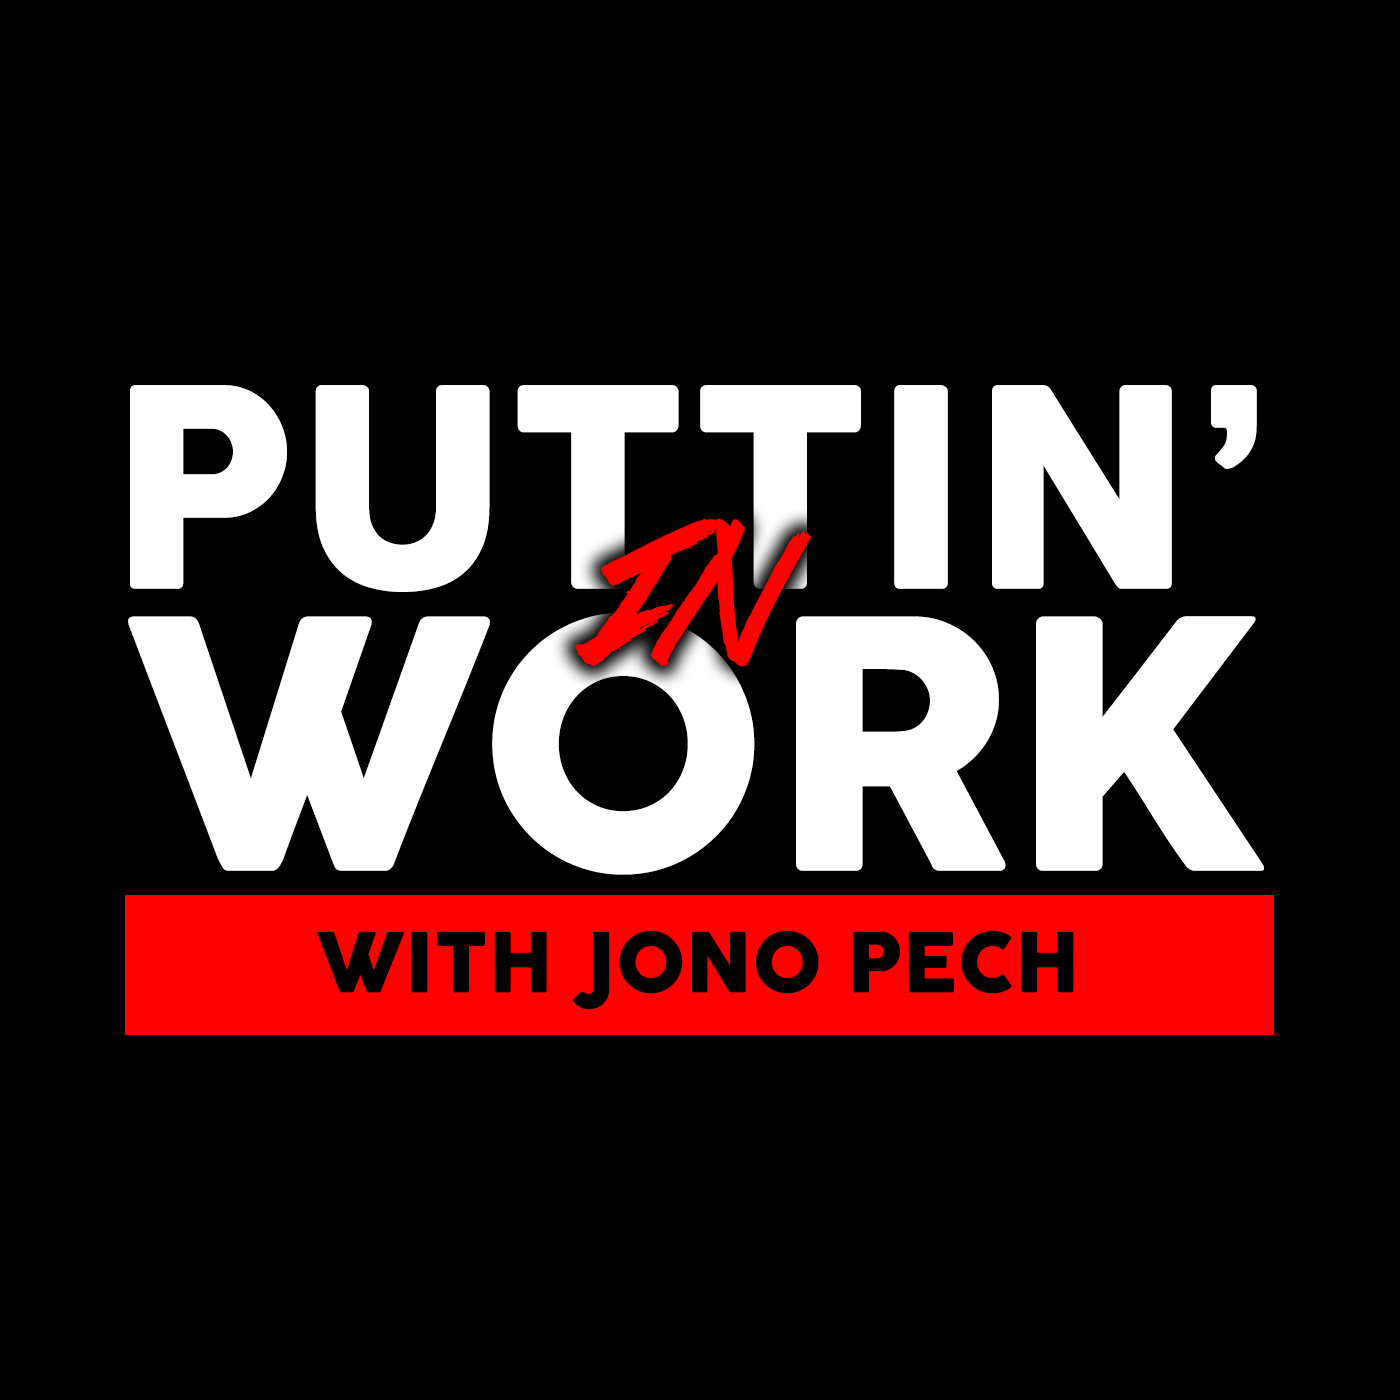 PUTTIN' IN WORK    Jono Pech's interview podcast Puttin' In Work explores the grit and grind of the creative process, revealing the greatest challenges behind the scenes for artists, authors, producers, YouTubers, designers, musicians, game developers, and a multitude of content creators all over the world. Each week, Jono presents an inspiring story of hard work that aims to motivate listeners, regardless of their interests.